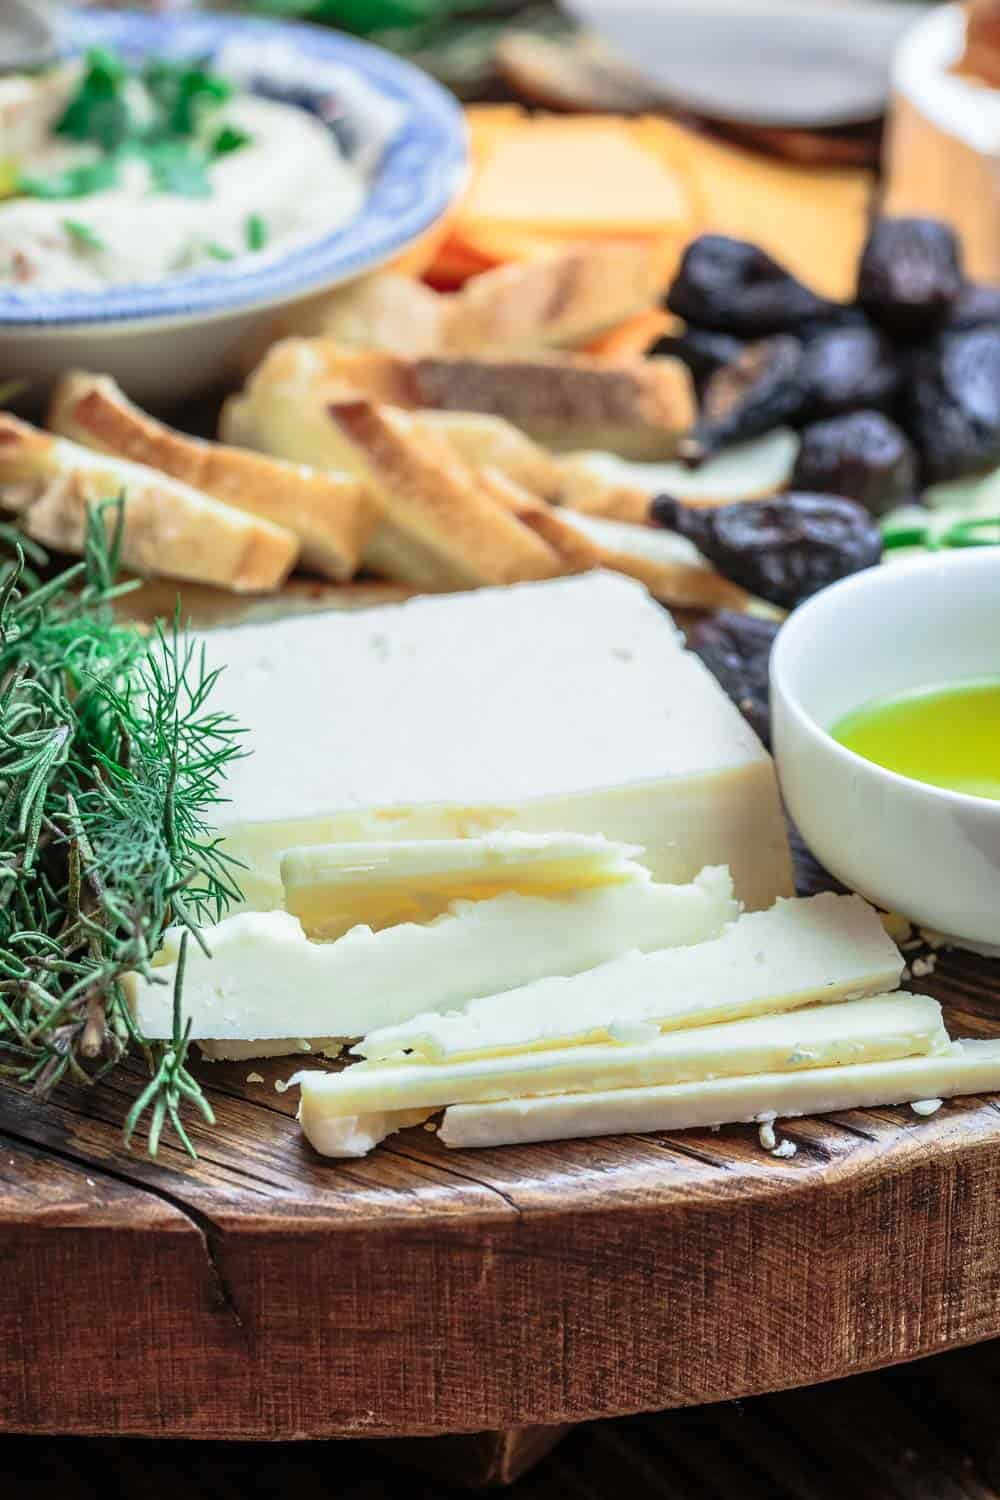 Mediterrane Küche An Bord How To Make The Best Cheese Board A Complete Guide The